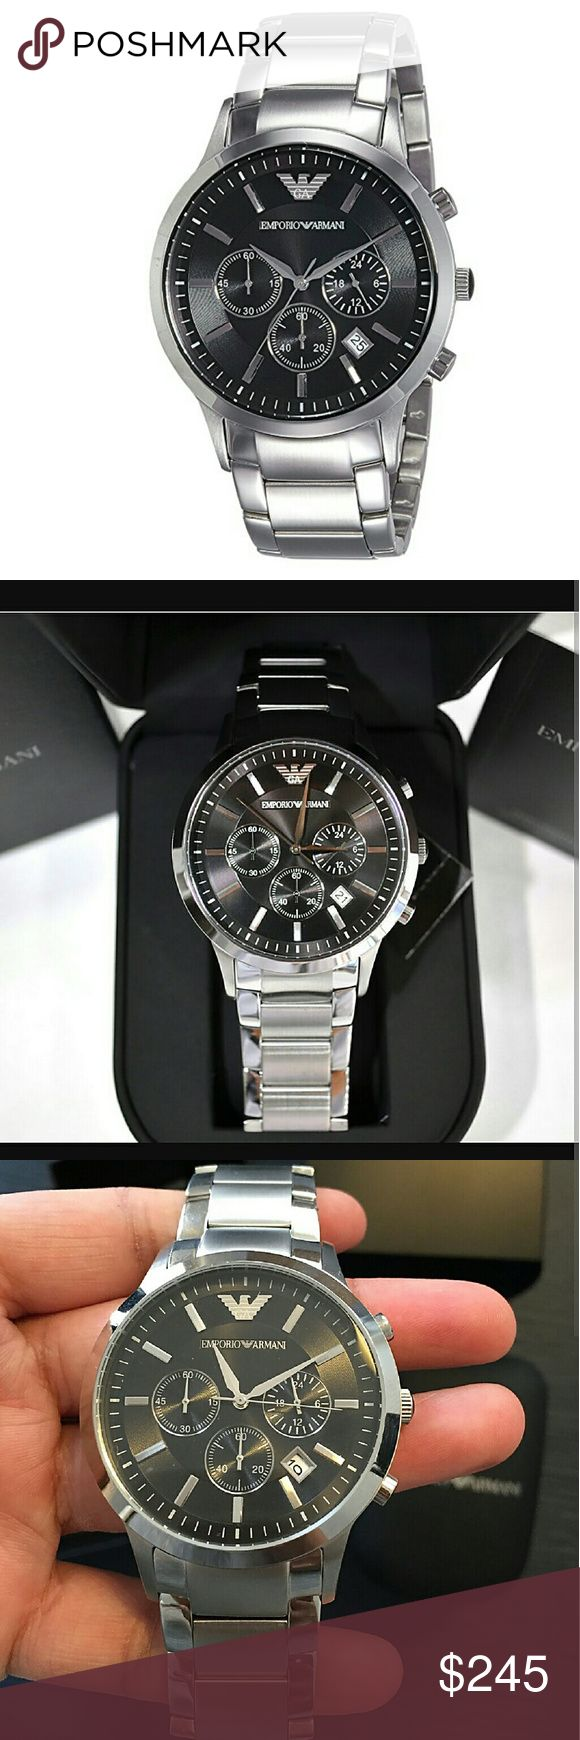 NWT Emporio Armani Chronograph Stainless watch NWT Emporio Armani Mens CHRONOGRAPH STAINLESS STEEL WATCH.    FIRM PRICE FIRM PRICE FIRM PRICE   $275.00 . AUTHENTIC WATCH  . AUTHENTIC BOX  . AUTHENTIC MANUAL     SHIPPING  PLEASE ALLOW FEW BUSINESS DAYS FOR ME TO SHIPPED IT OFF.I HAVE TO GET IT FROM MY WAREHOUSE.    THANK YOU FOR YOUR UNDERSTANDING emporio Armani  Accessories Watches